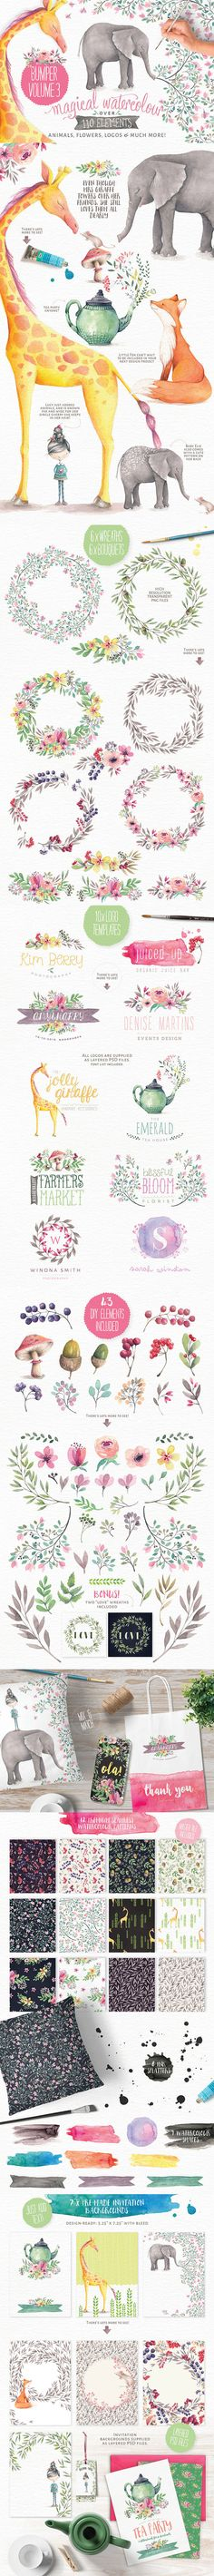 creative-designers-illustration-kit-1a